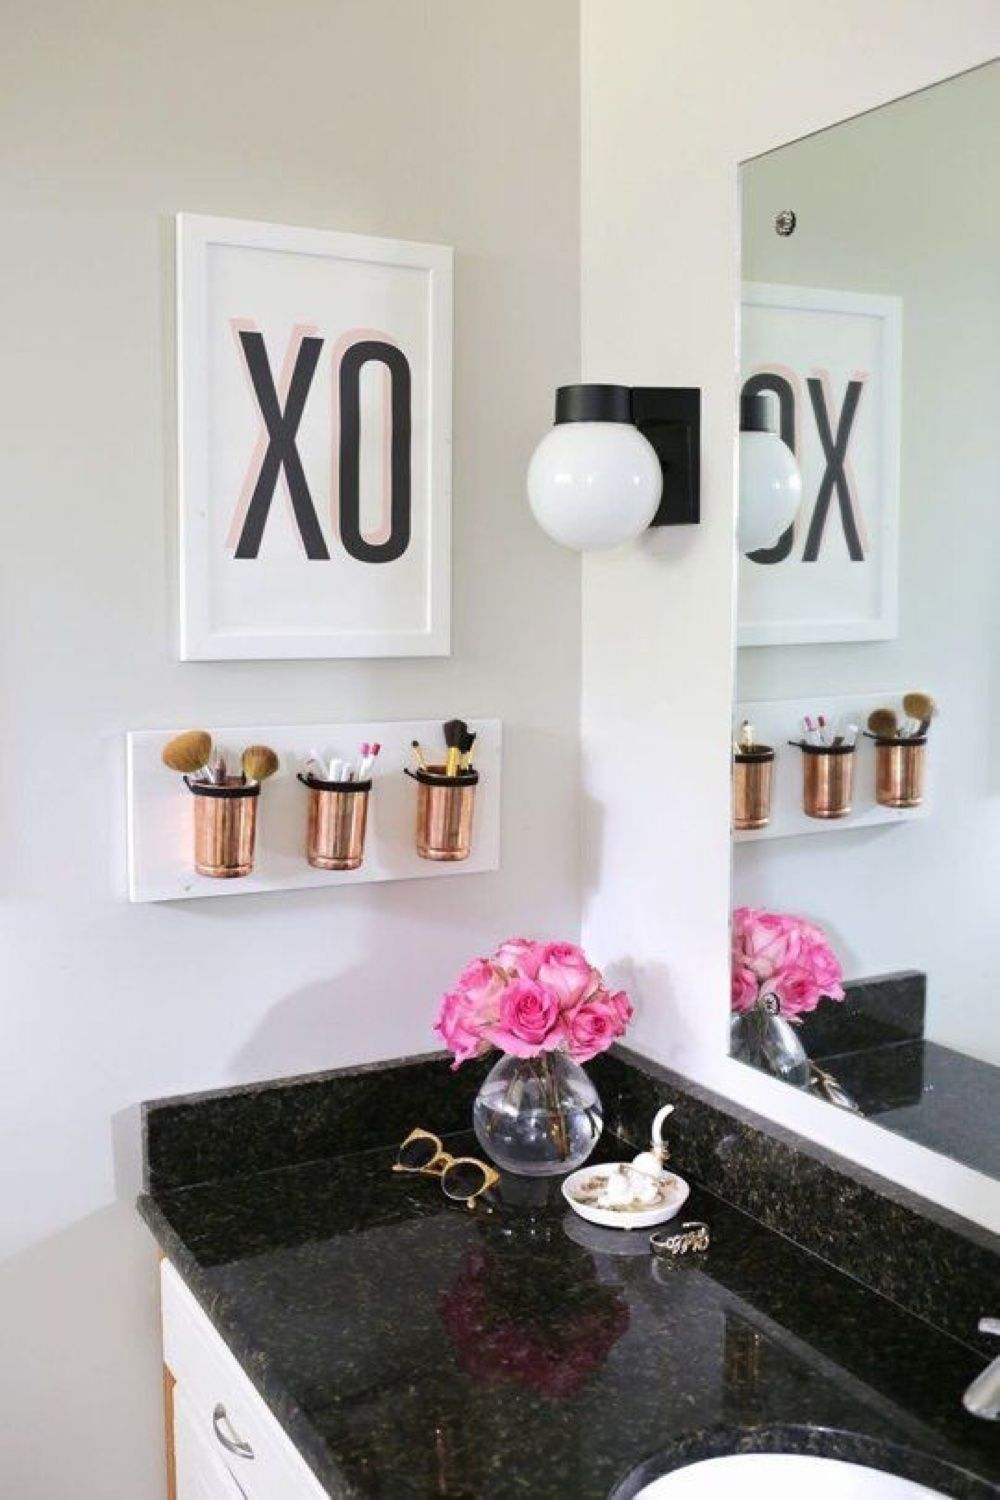 Black and gold bathroom decorating ideas - 25 Exciting Bathroom Decor Ideas To Take Yours From Functional To Fantastic